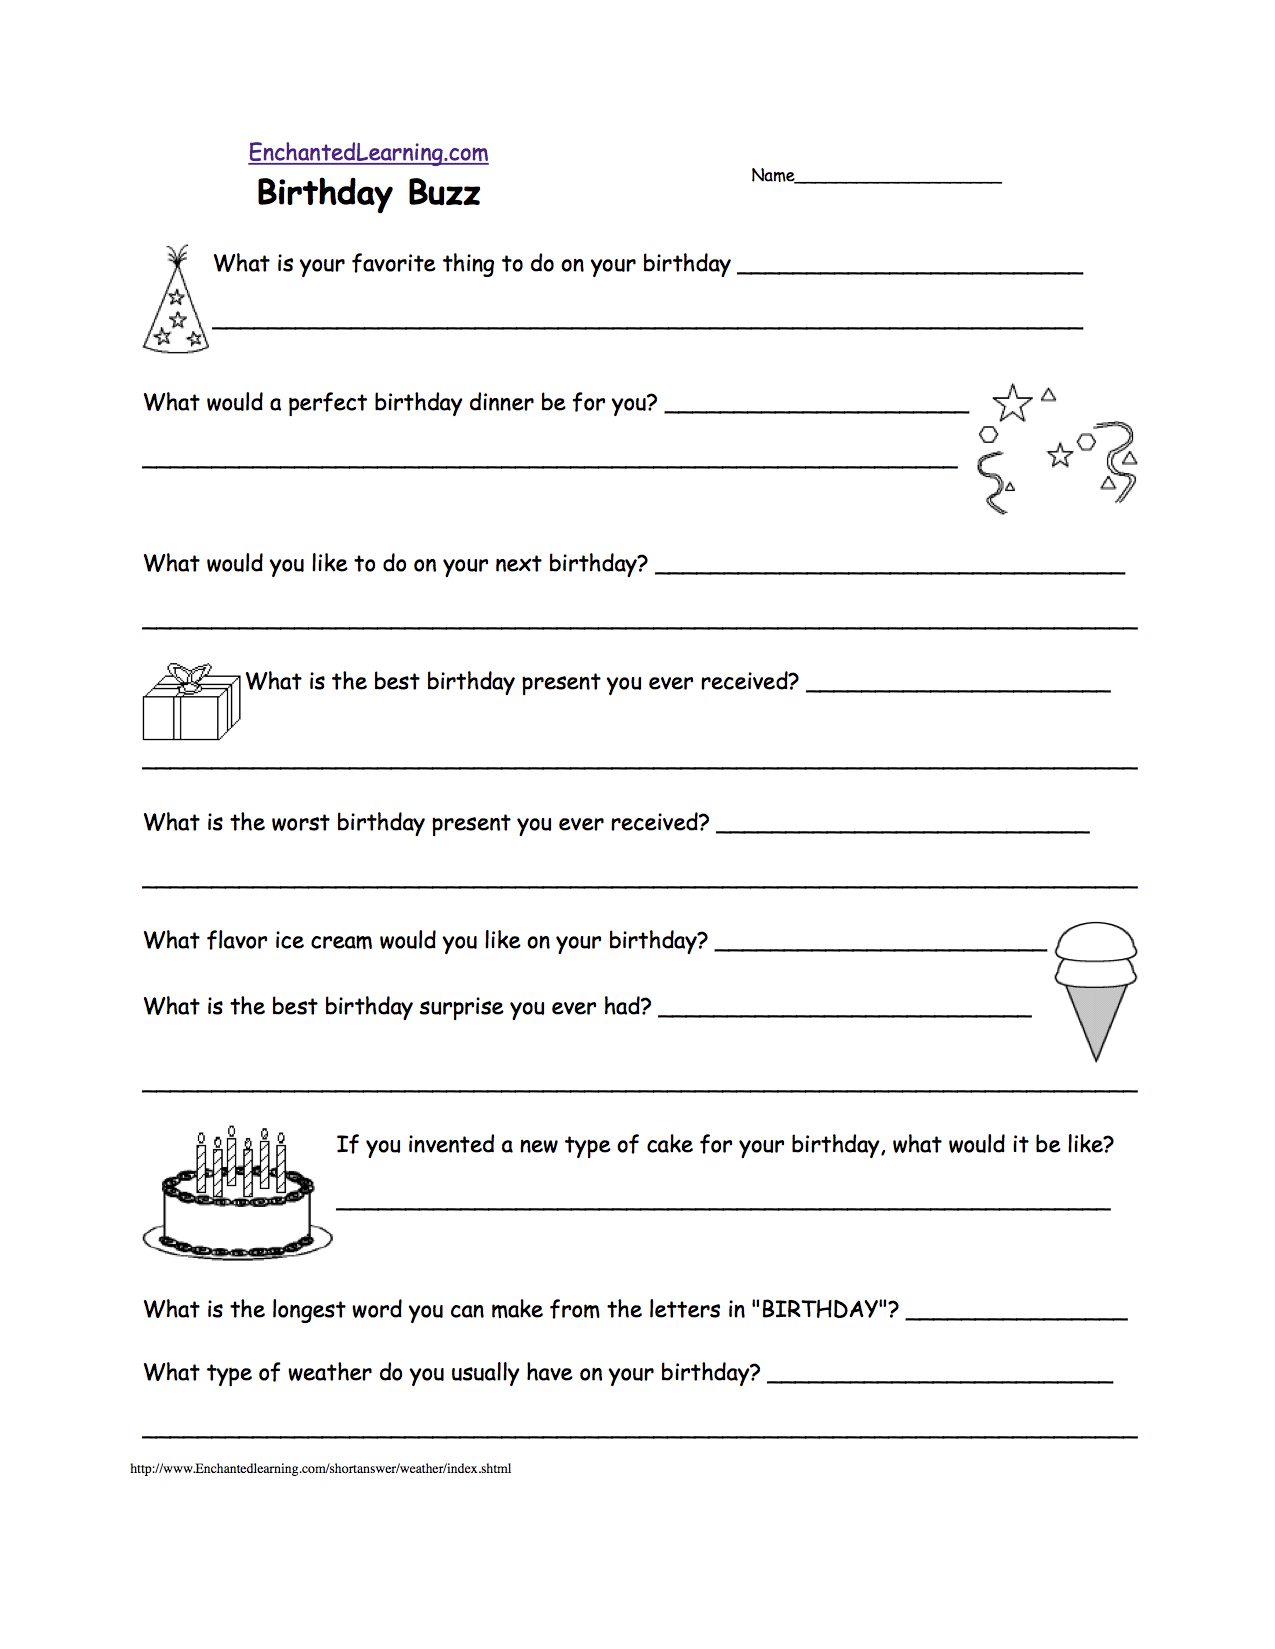 my birthday essay writing worksheets birthday activities at com on  writing worksheets birthday activities at com birthday